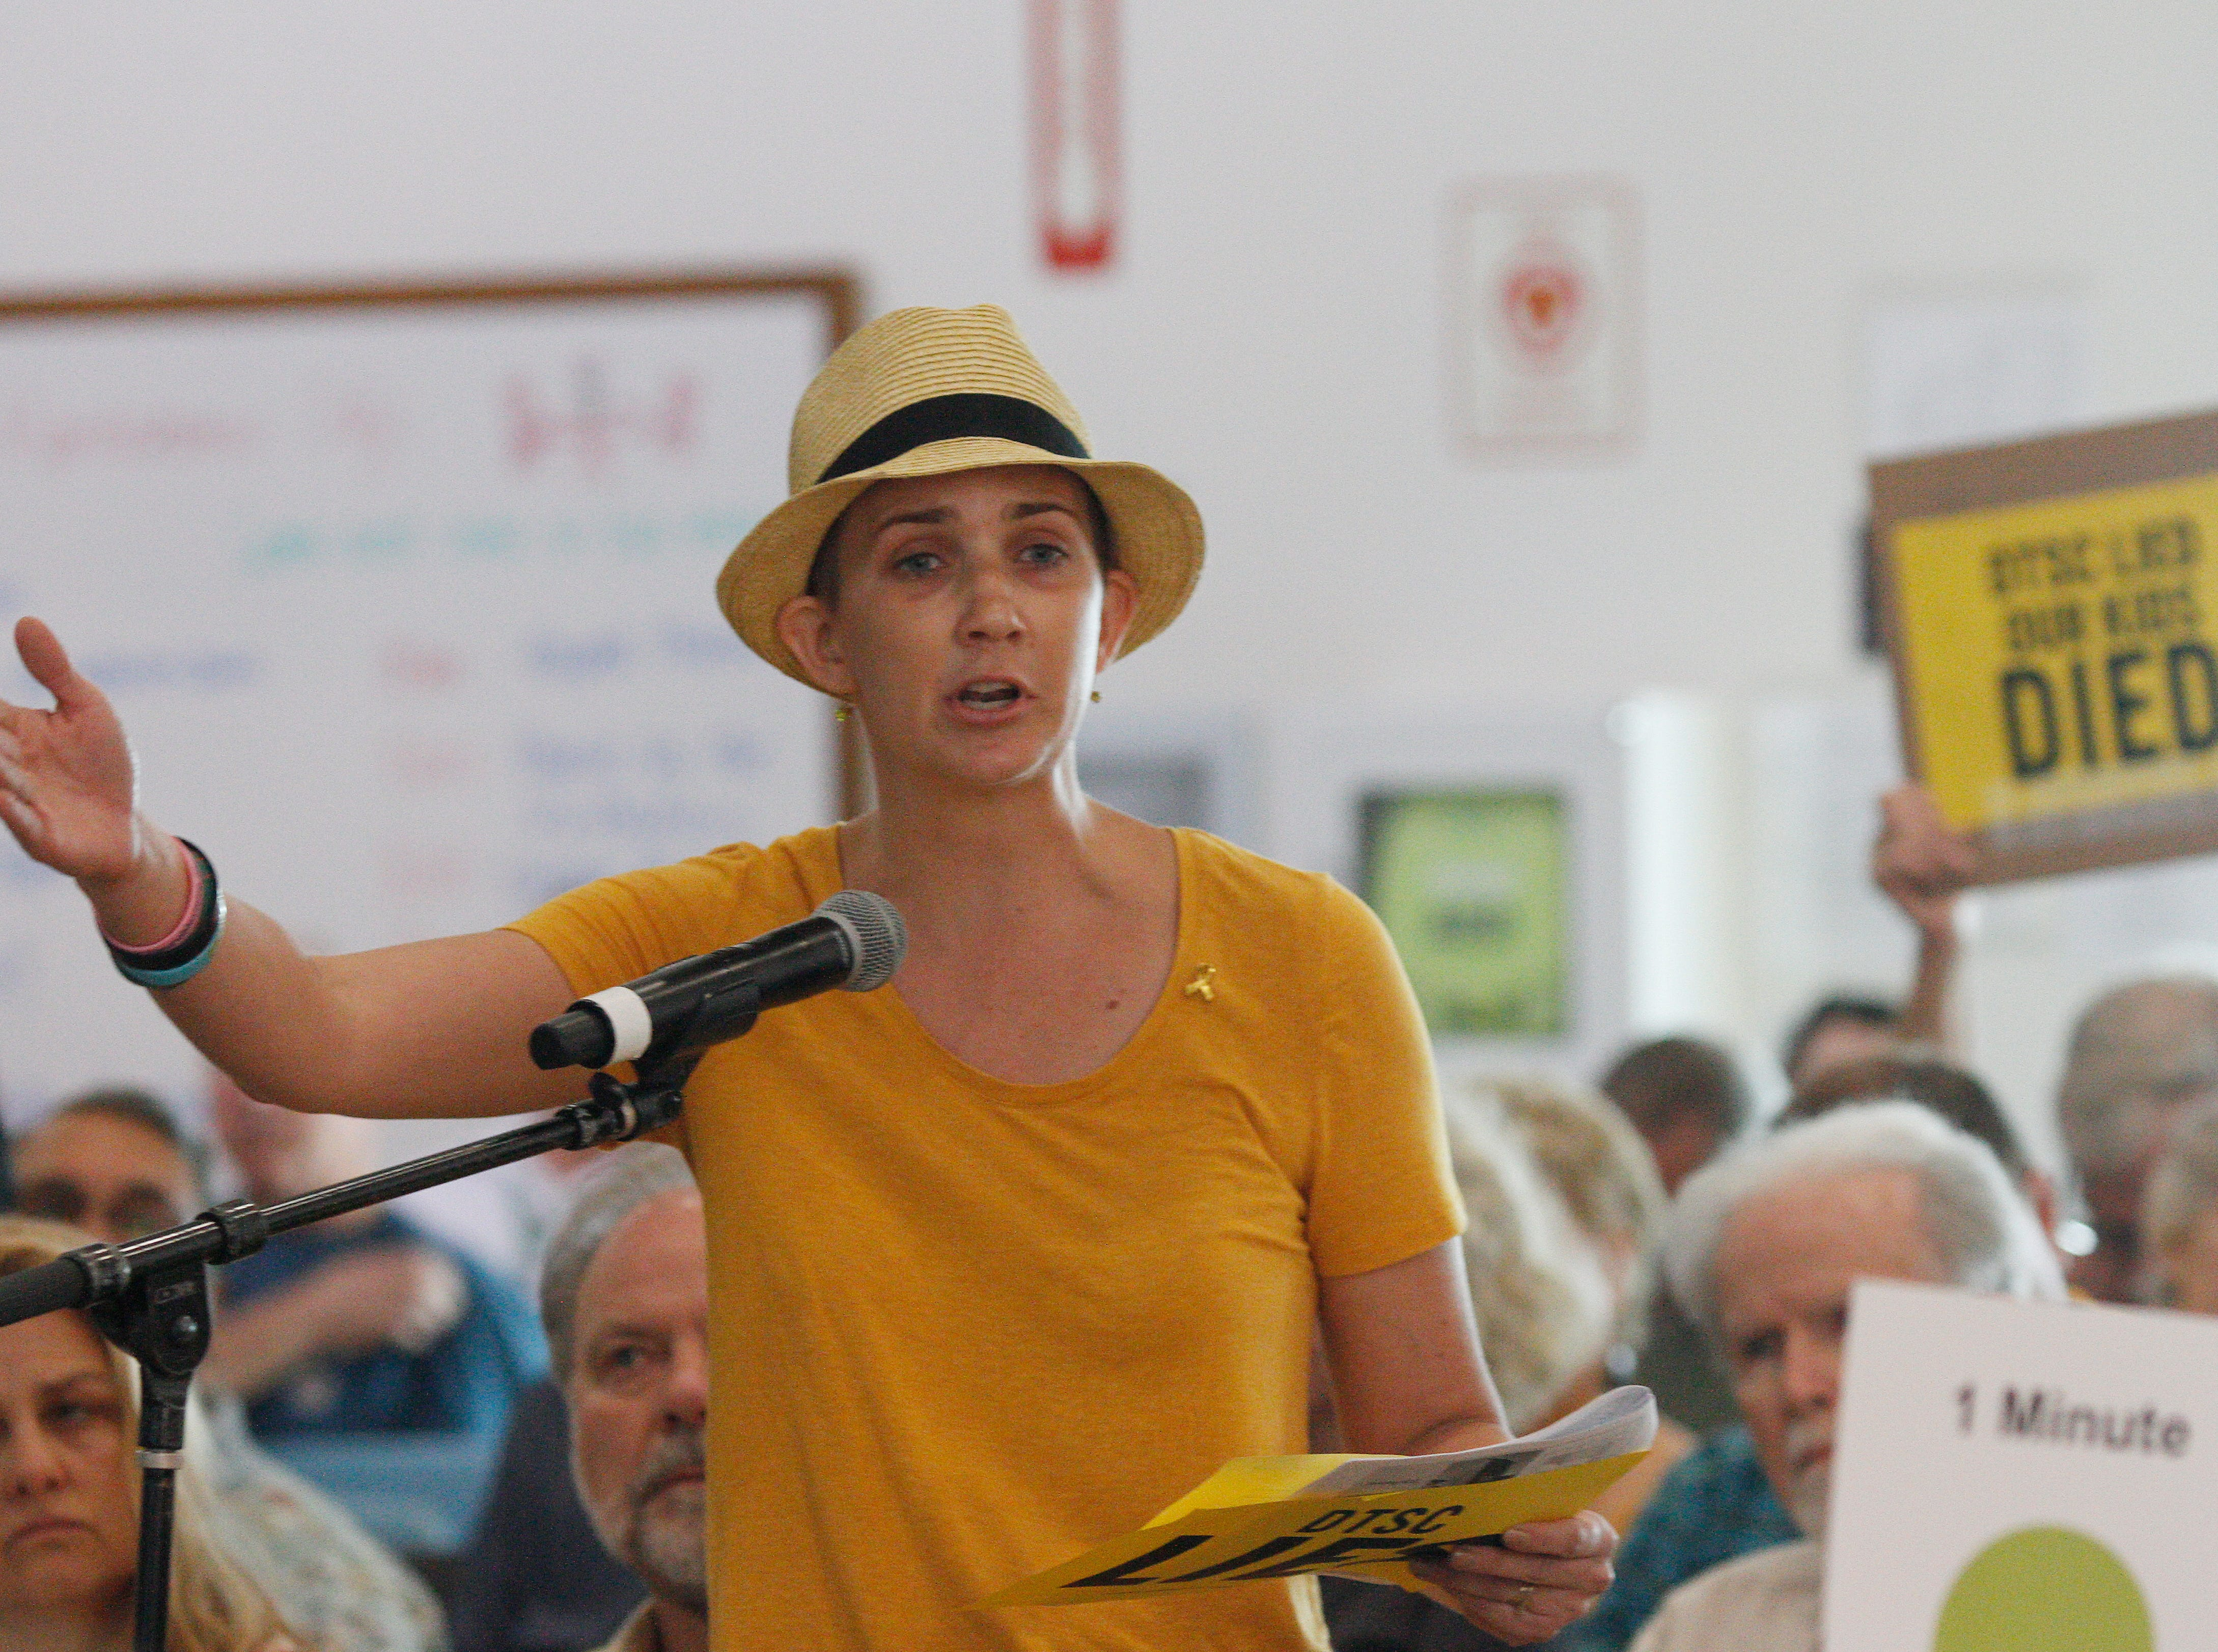 Melissa Bumstead, an organizer for Parents Against SSFL, speaks against the California Department of Toxic Substances Control's handling of the proposed cleanup of the Santa Susana Field Lab during a public hearing Saturday at the Simi Valley Senior Center.